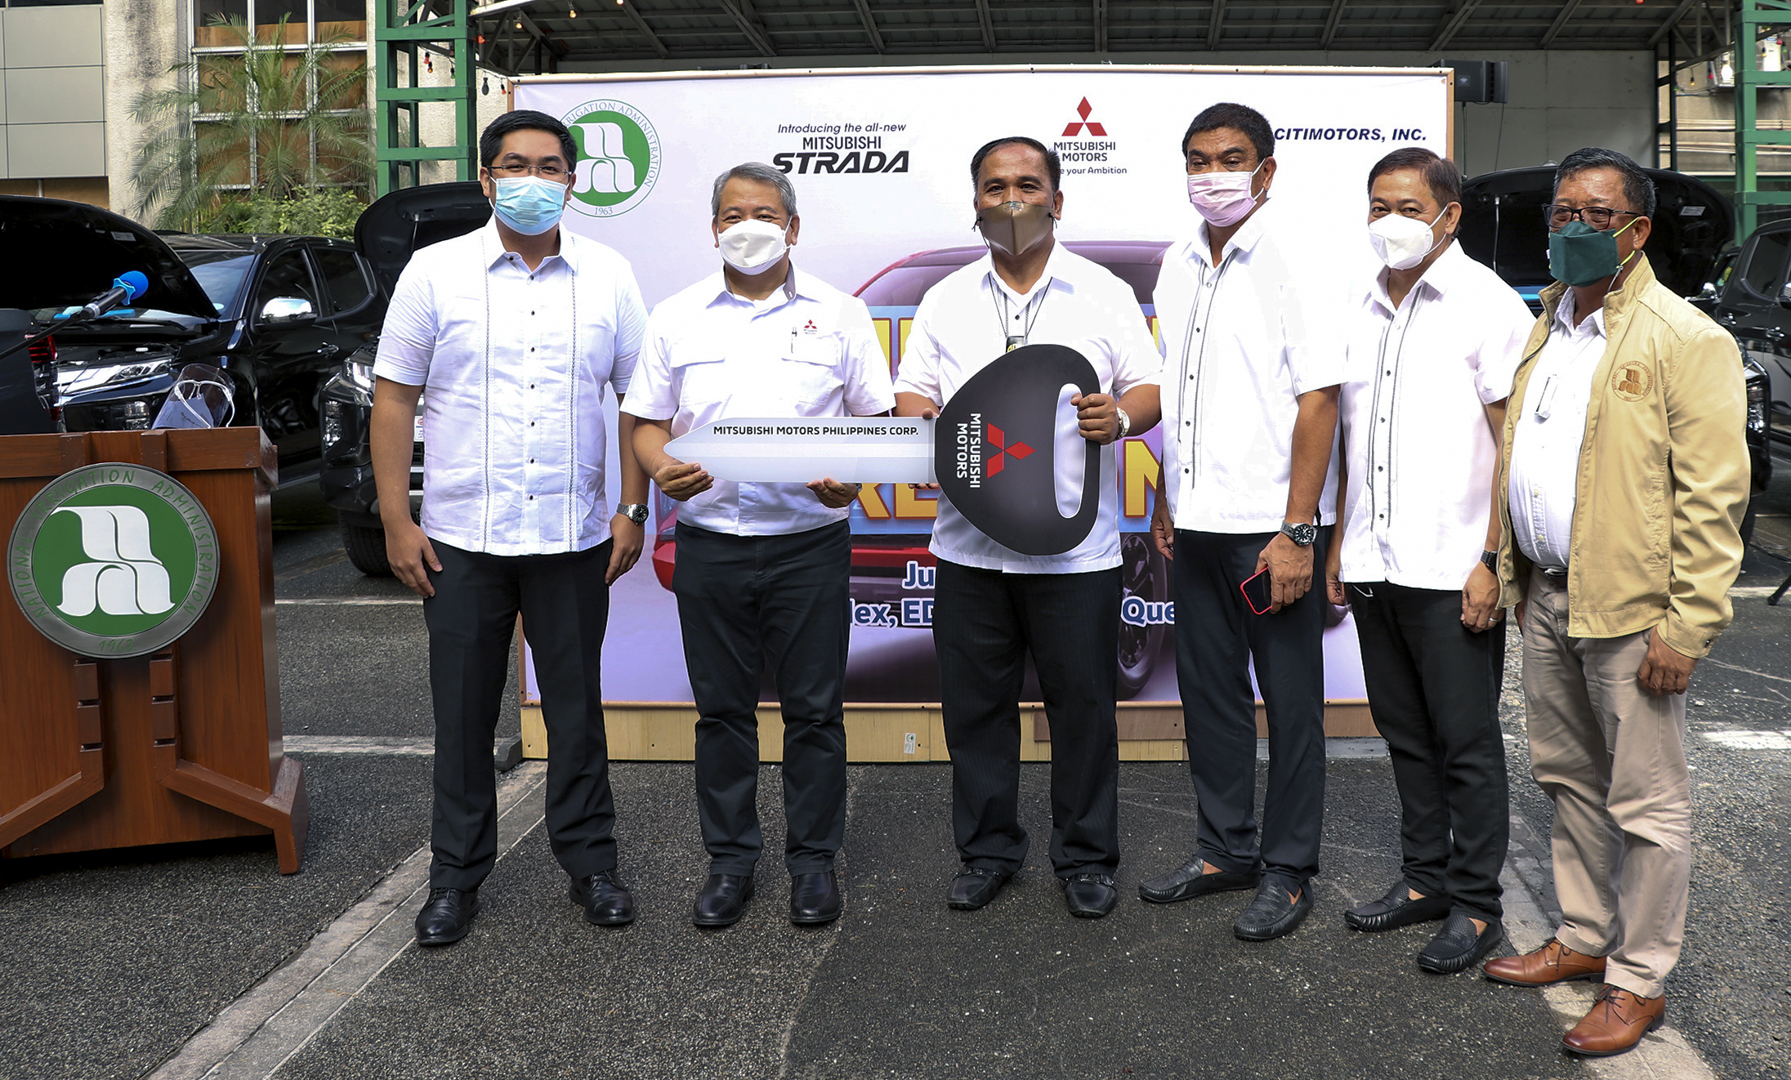 95 Mitsubishi Strada units to be used by National Irrigation Administration (NIA) for their Field Operations